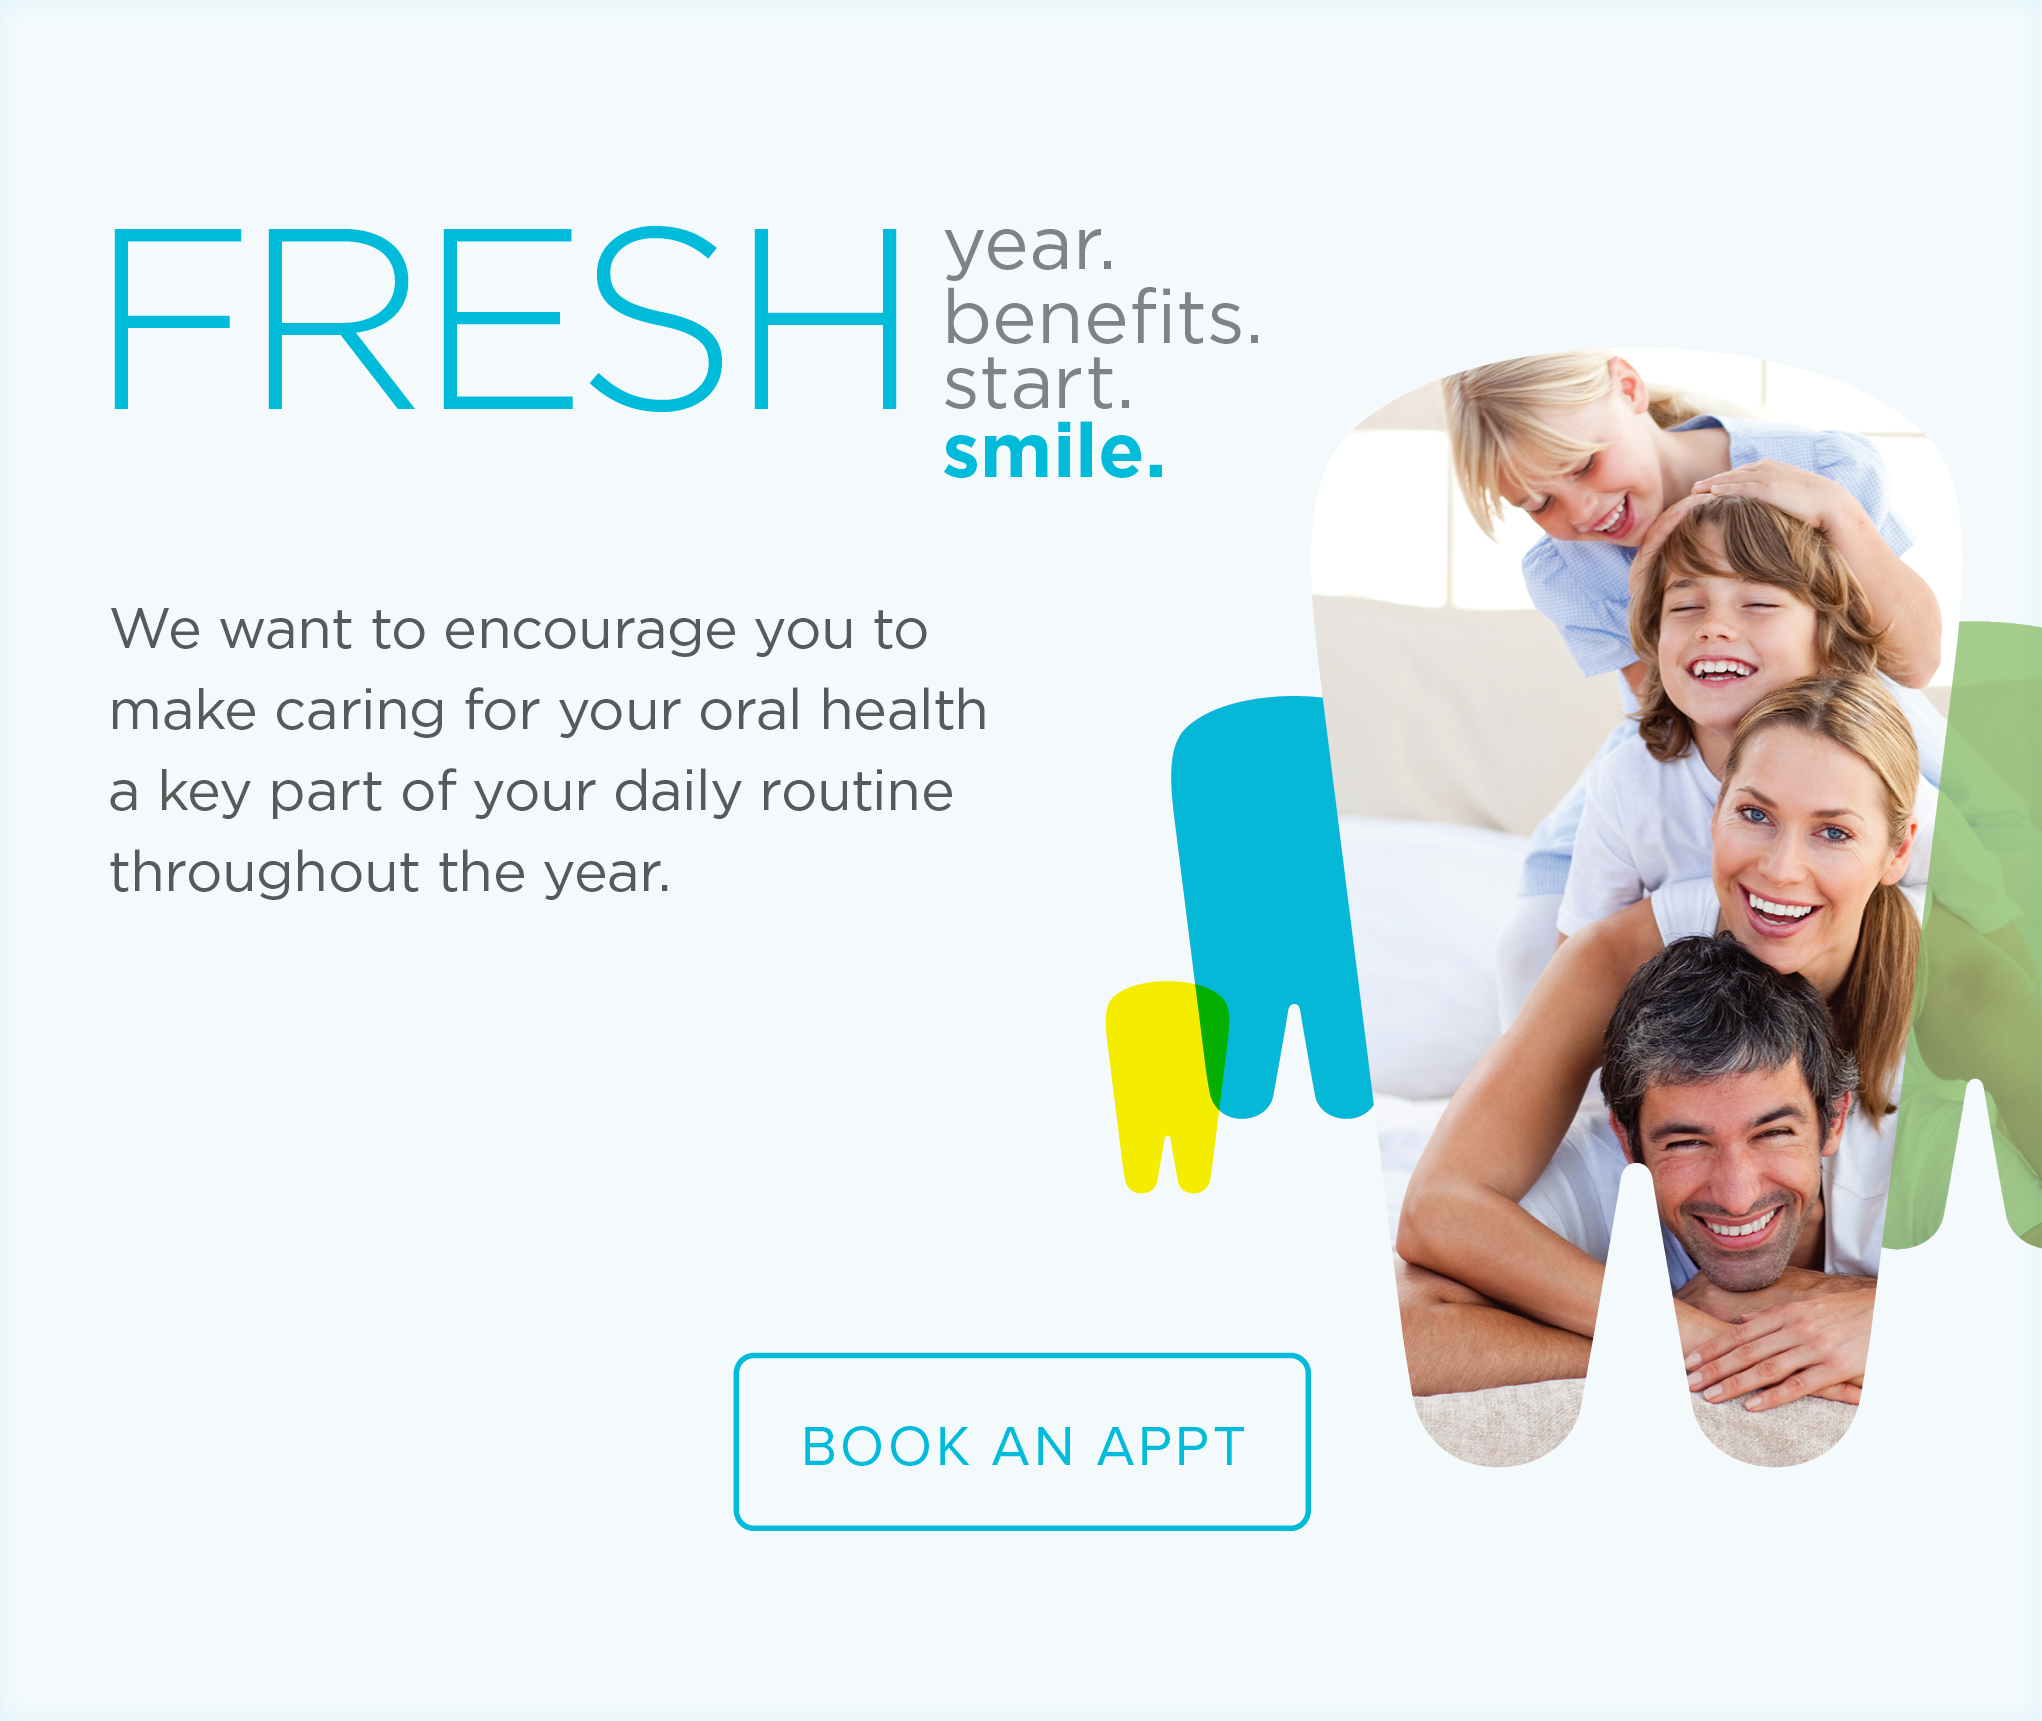 Rock Hill Dentistry - Make the Most of Your Benefits